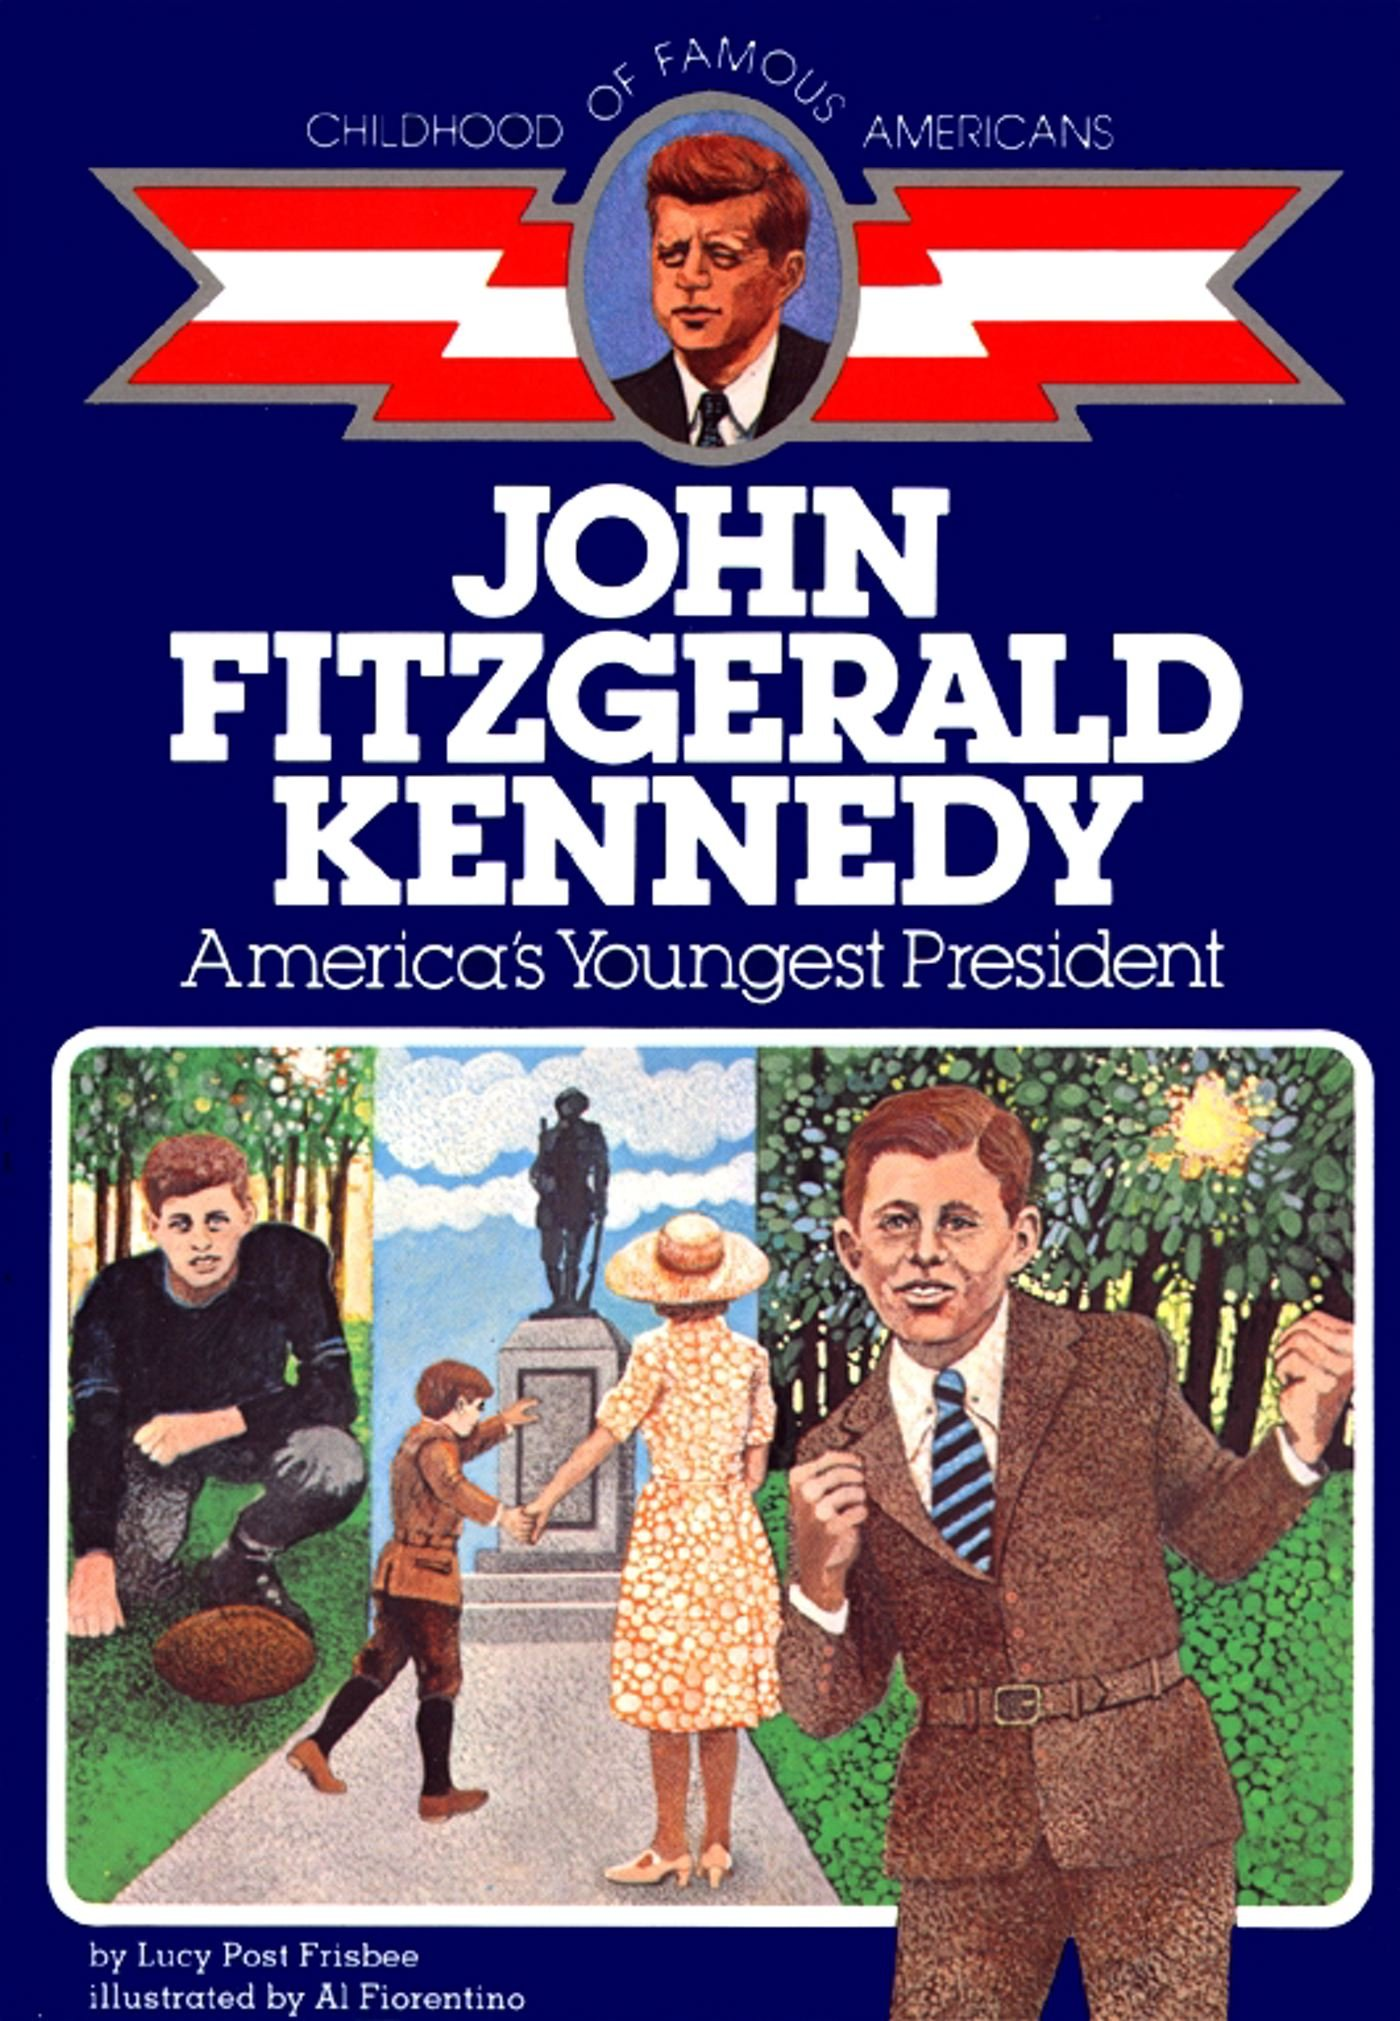 John Fitzgerald Kennedy President Childhood product image